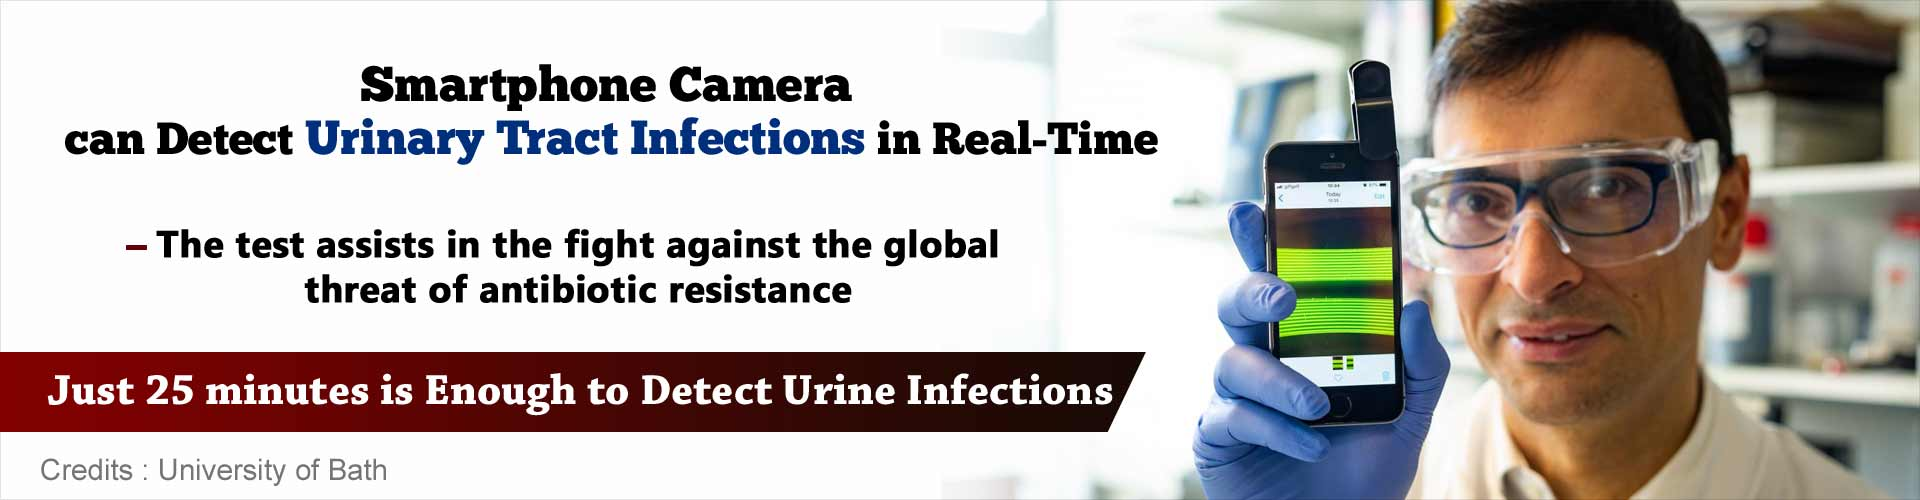 Smartphone camera can detect Urinary Tract Infections in real-time. The test assists in the fight against the global threat of antibiotic resistance. Just 25 minutes is enough to detect urine infections.